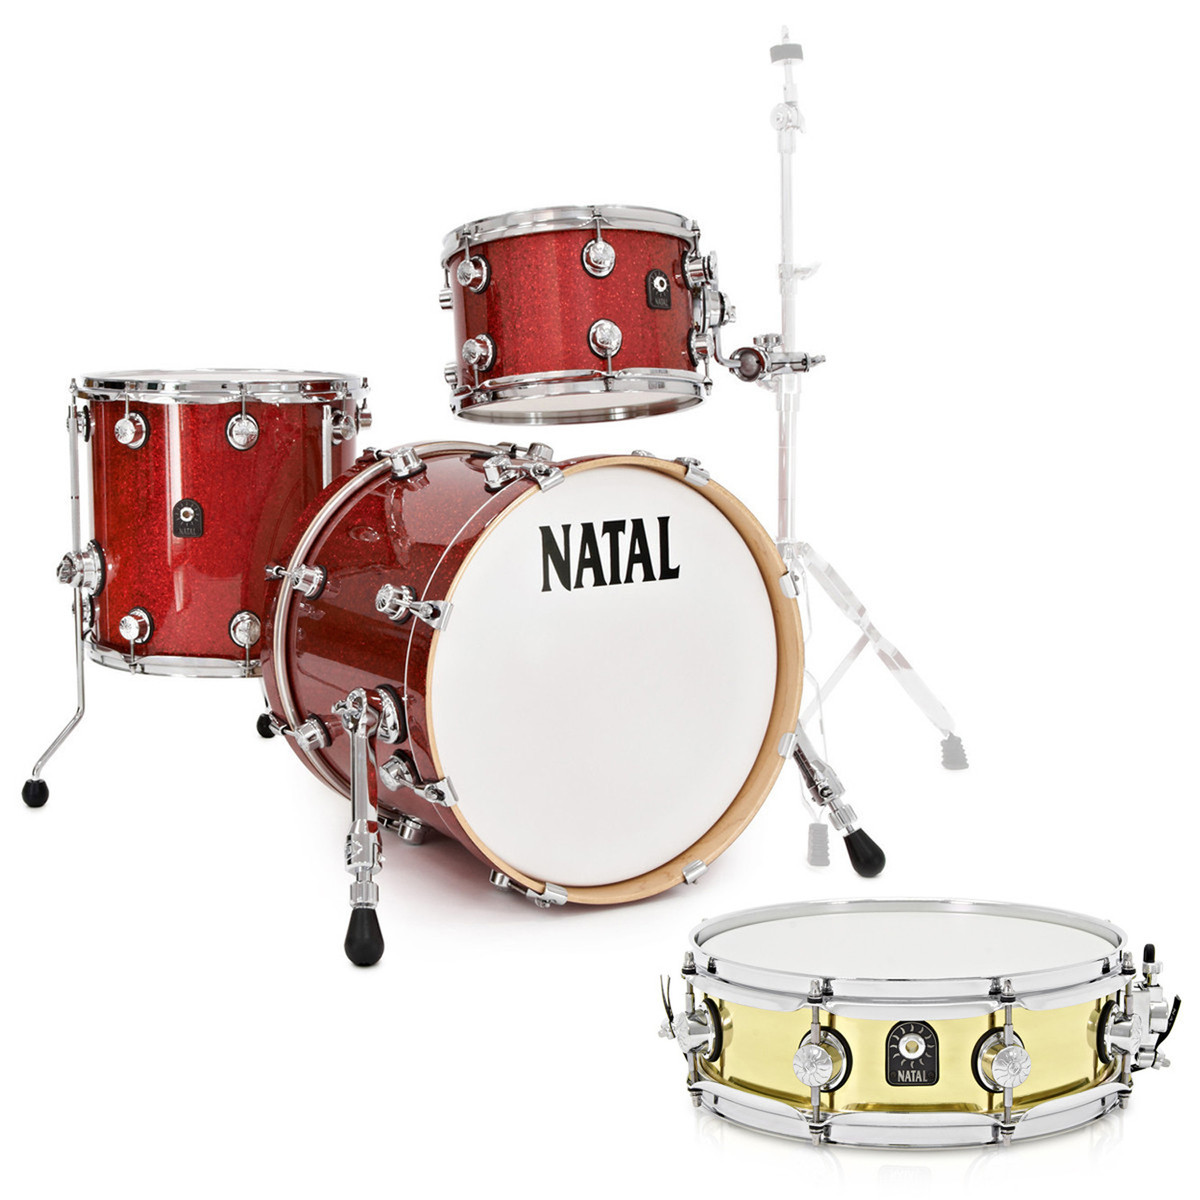 natal maple 3 piece jazz shell pack red sparkle with free snare drum at gear4music. Black Bedroom Furniture Sets. Home Design Ideas